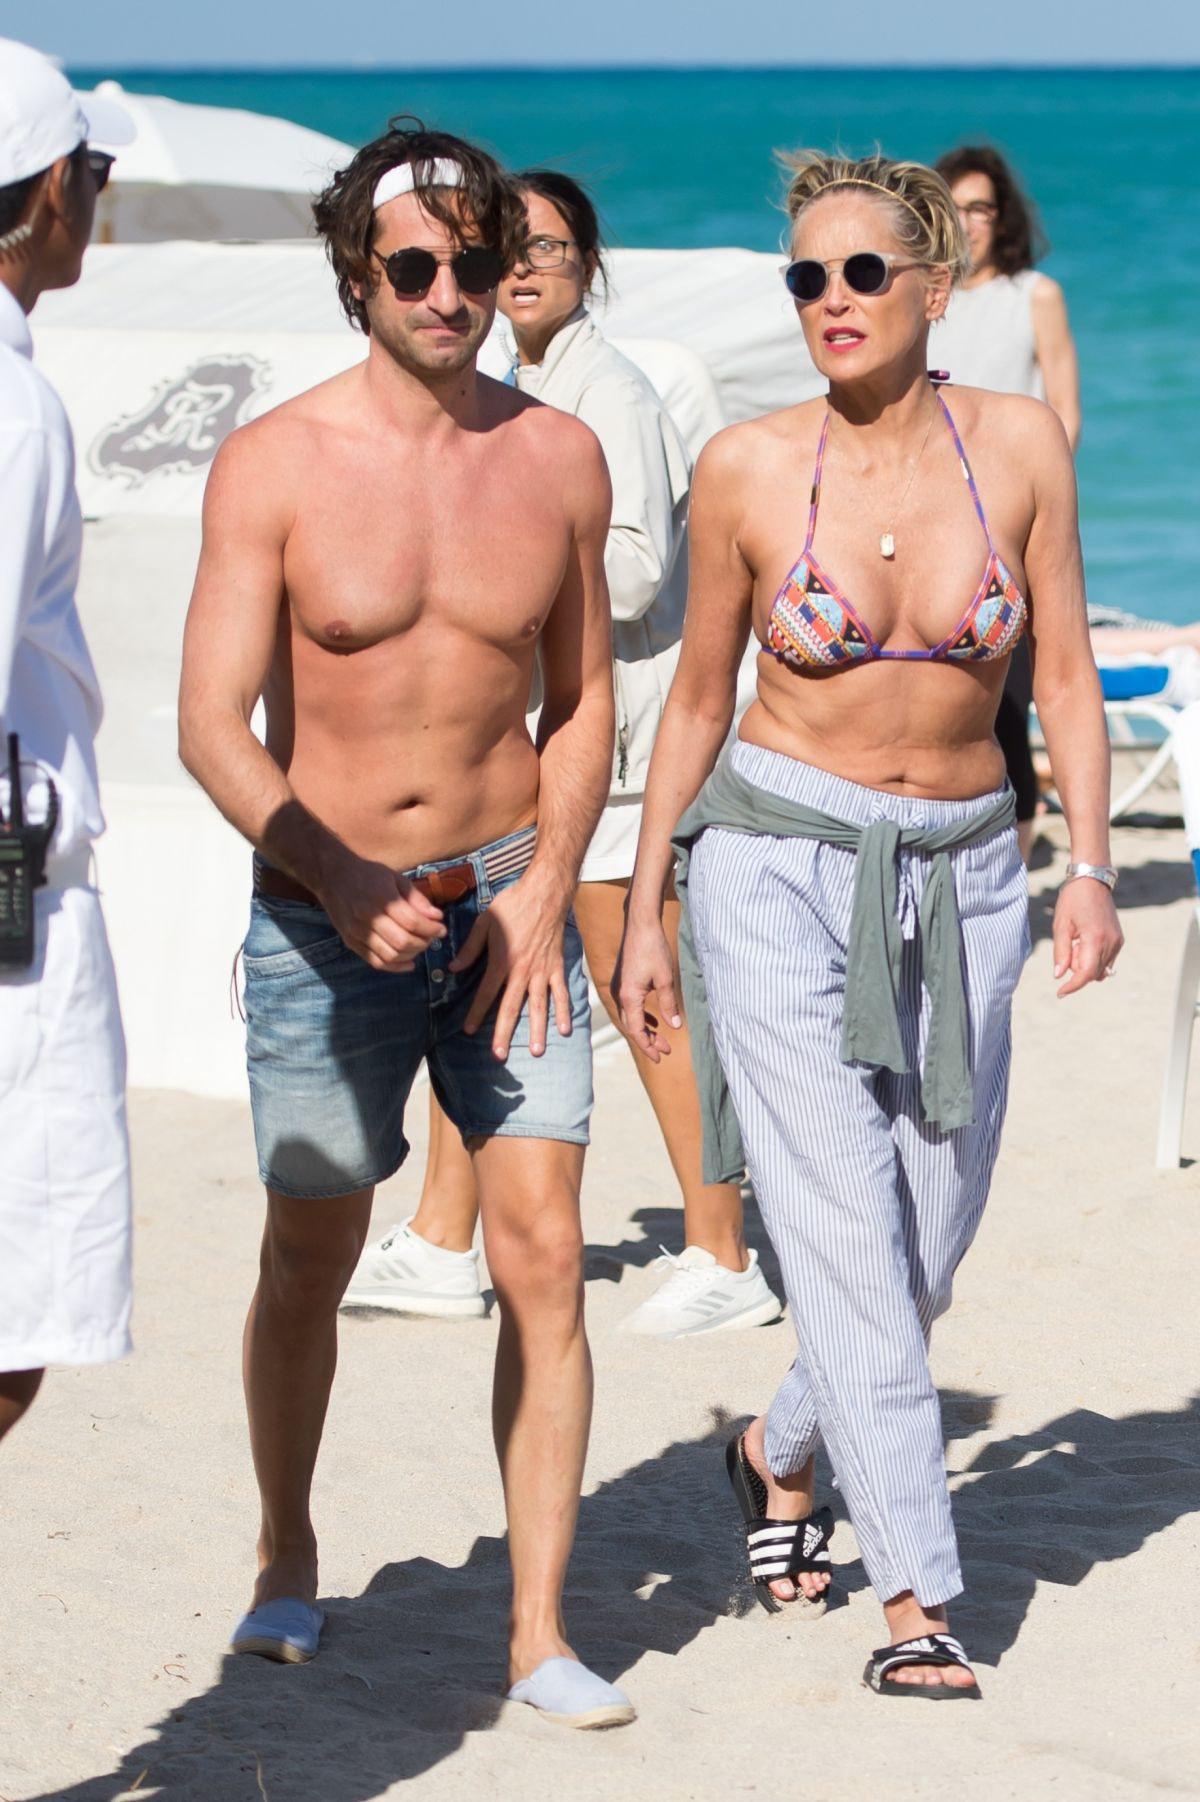 Sharon Stone At the beach in Miami with her boyfriend ... Emma Stone